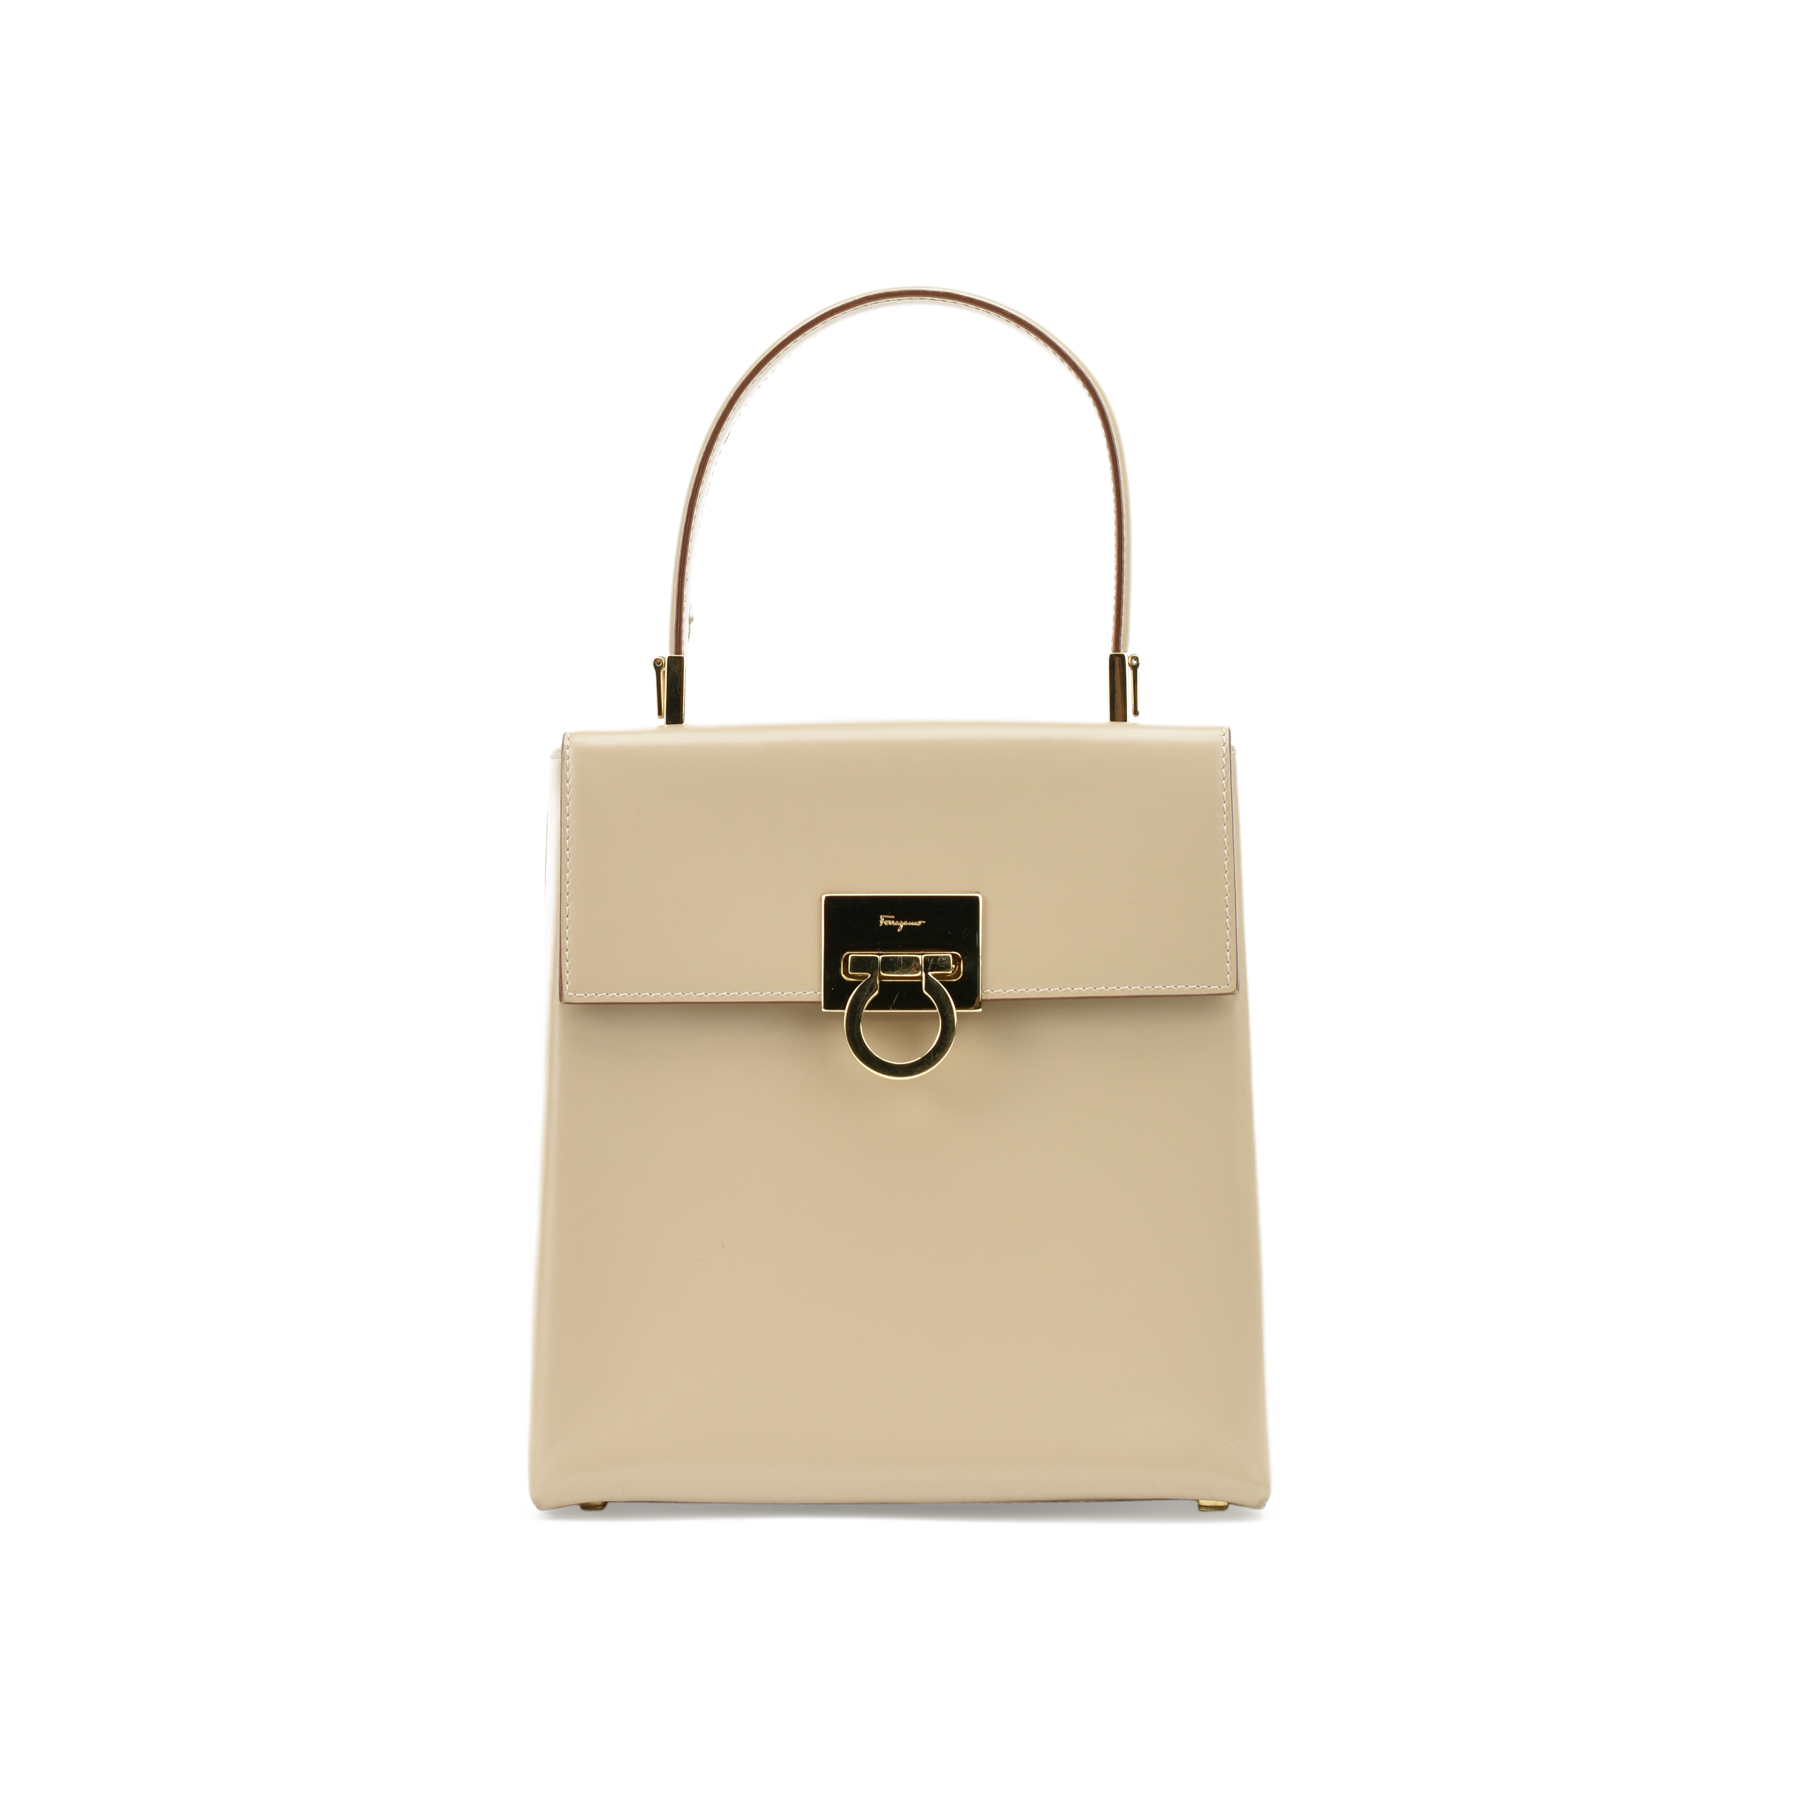 f91a0e62358 Authentic Vintage Salvatore Ferragamo Lady Gancini Kelly Bag  (PSS-377-00051)   THE FIFTH COLLECTION®